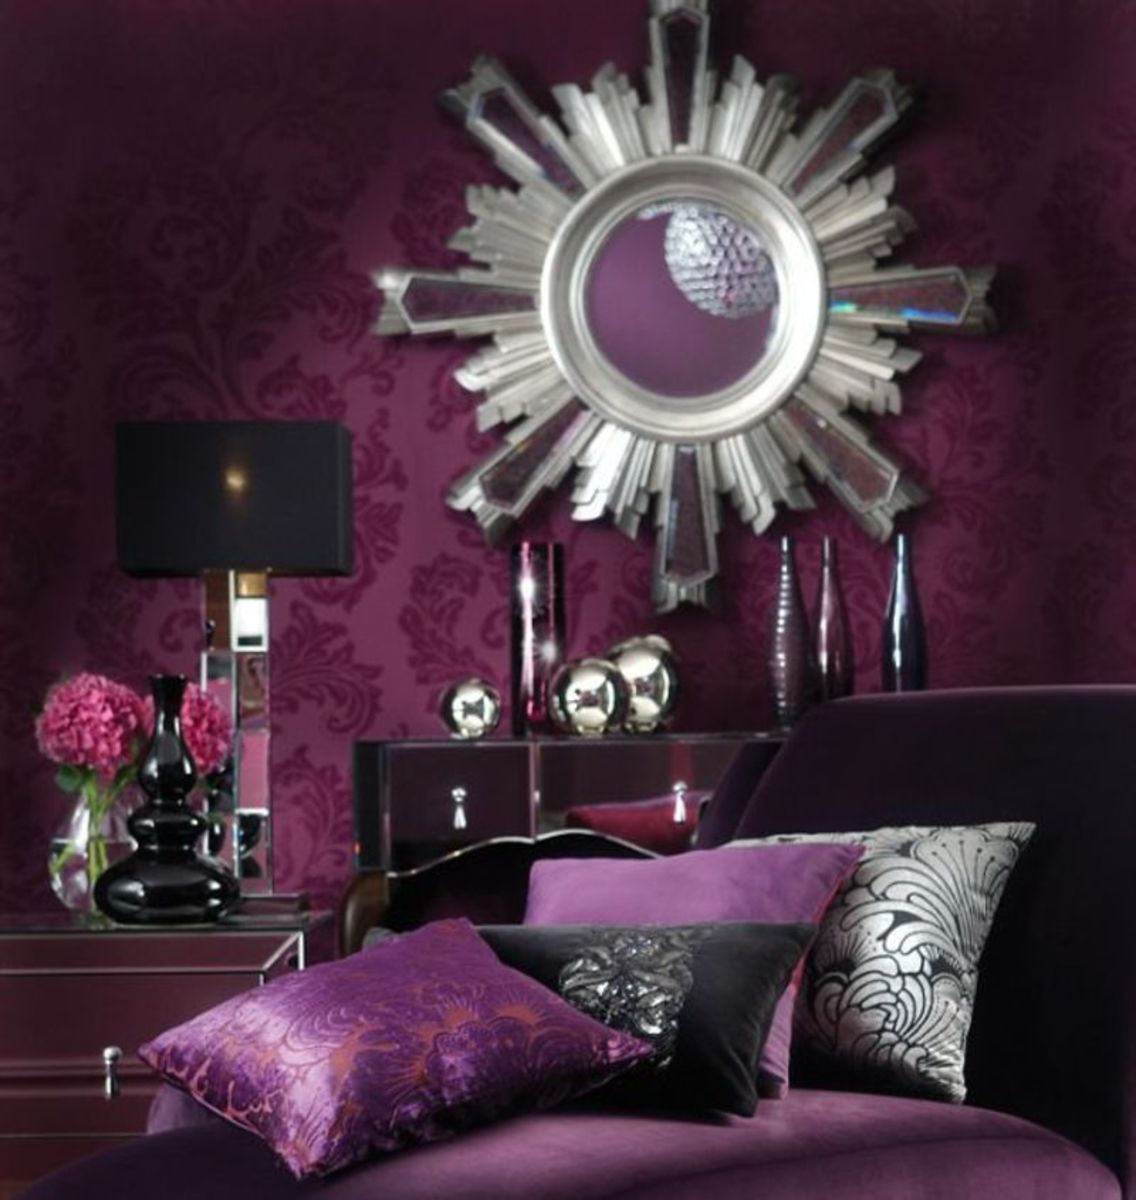 Purple, violet, wine or plum Bedroom Design Decor Ideas